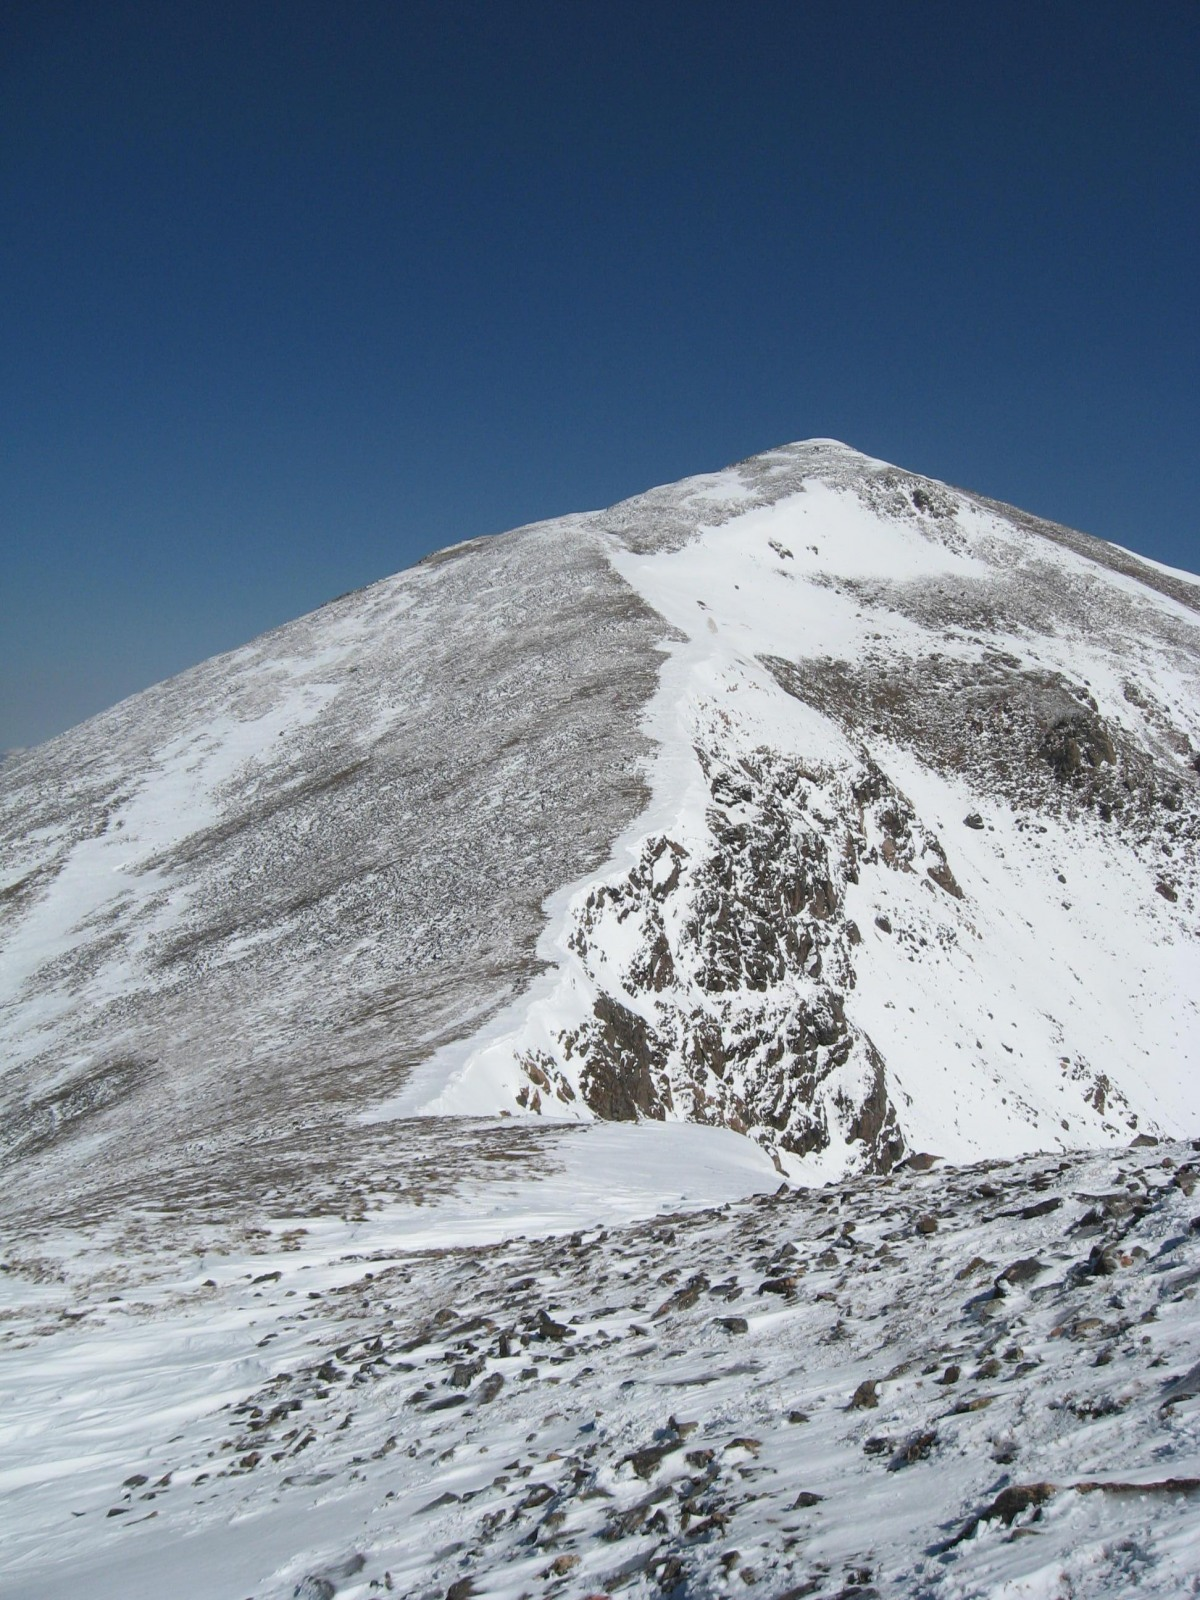 Parry Peak viewed from the southeast